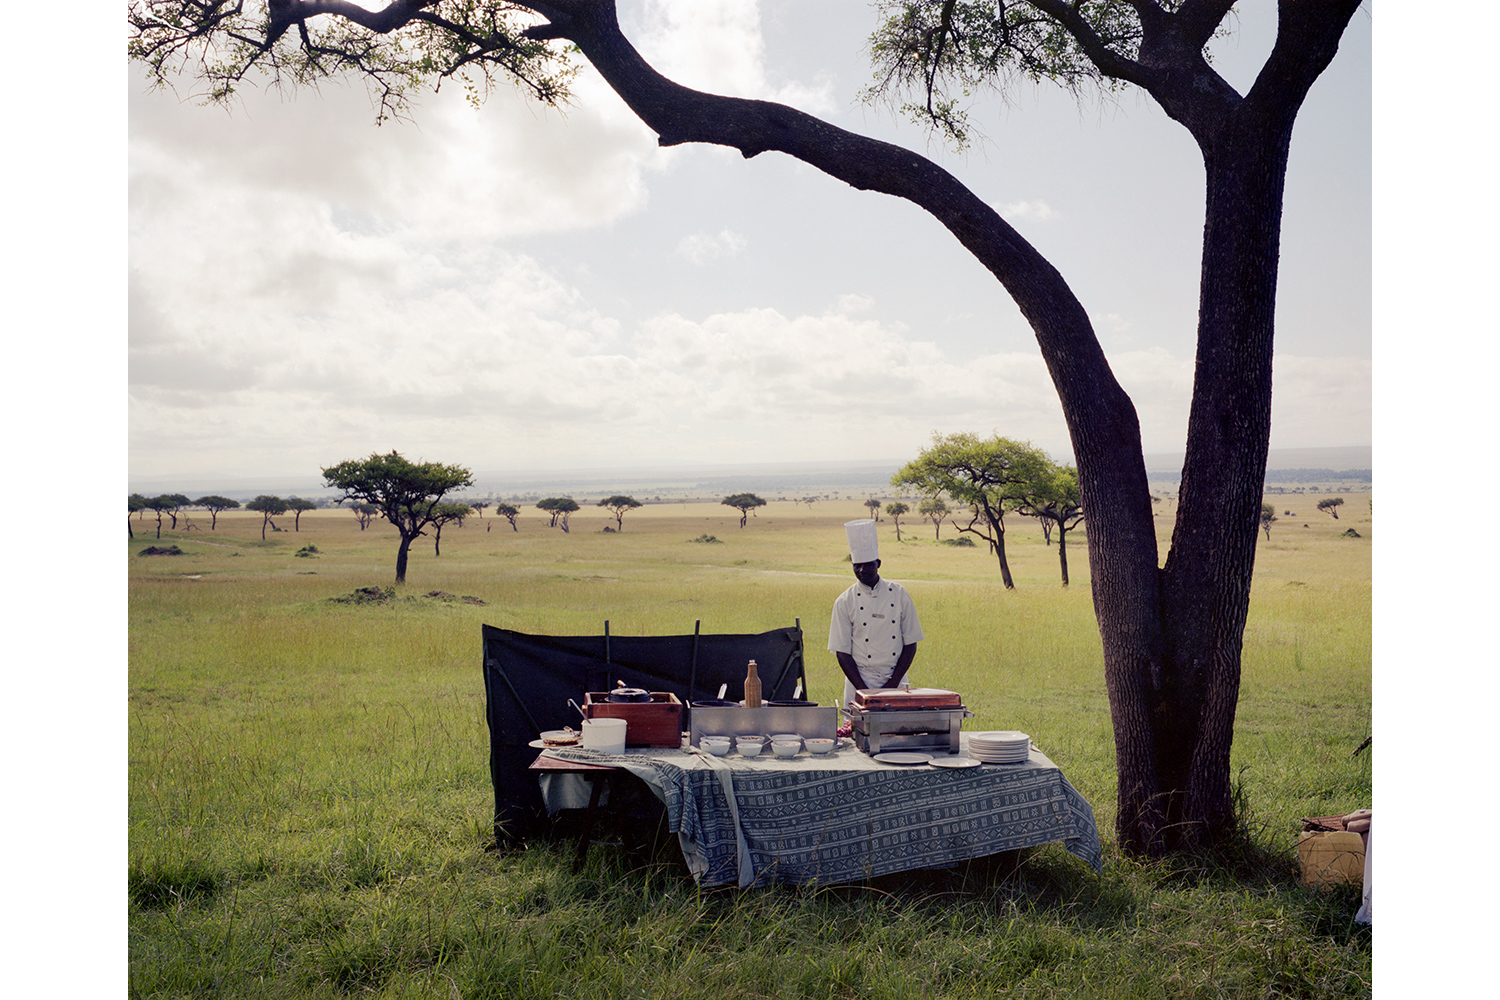 A chef from a nearby luxury lodge waits for his guests to arrive from an air balloon excursion, for a champagne bush breakfast in the middle of Kenya's Masai Mara game reserve. 2012